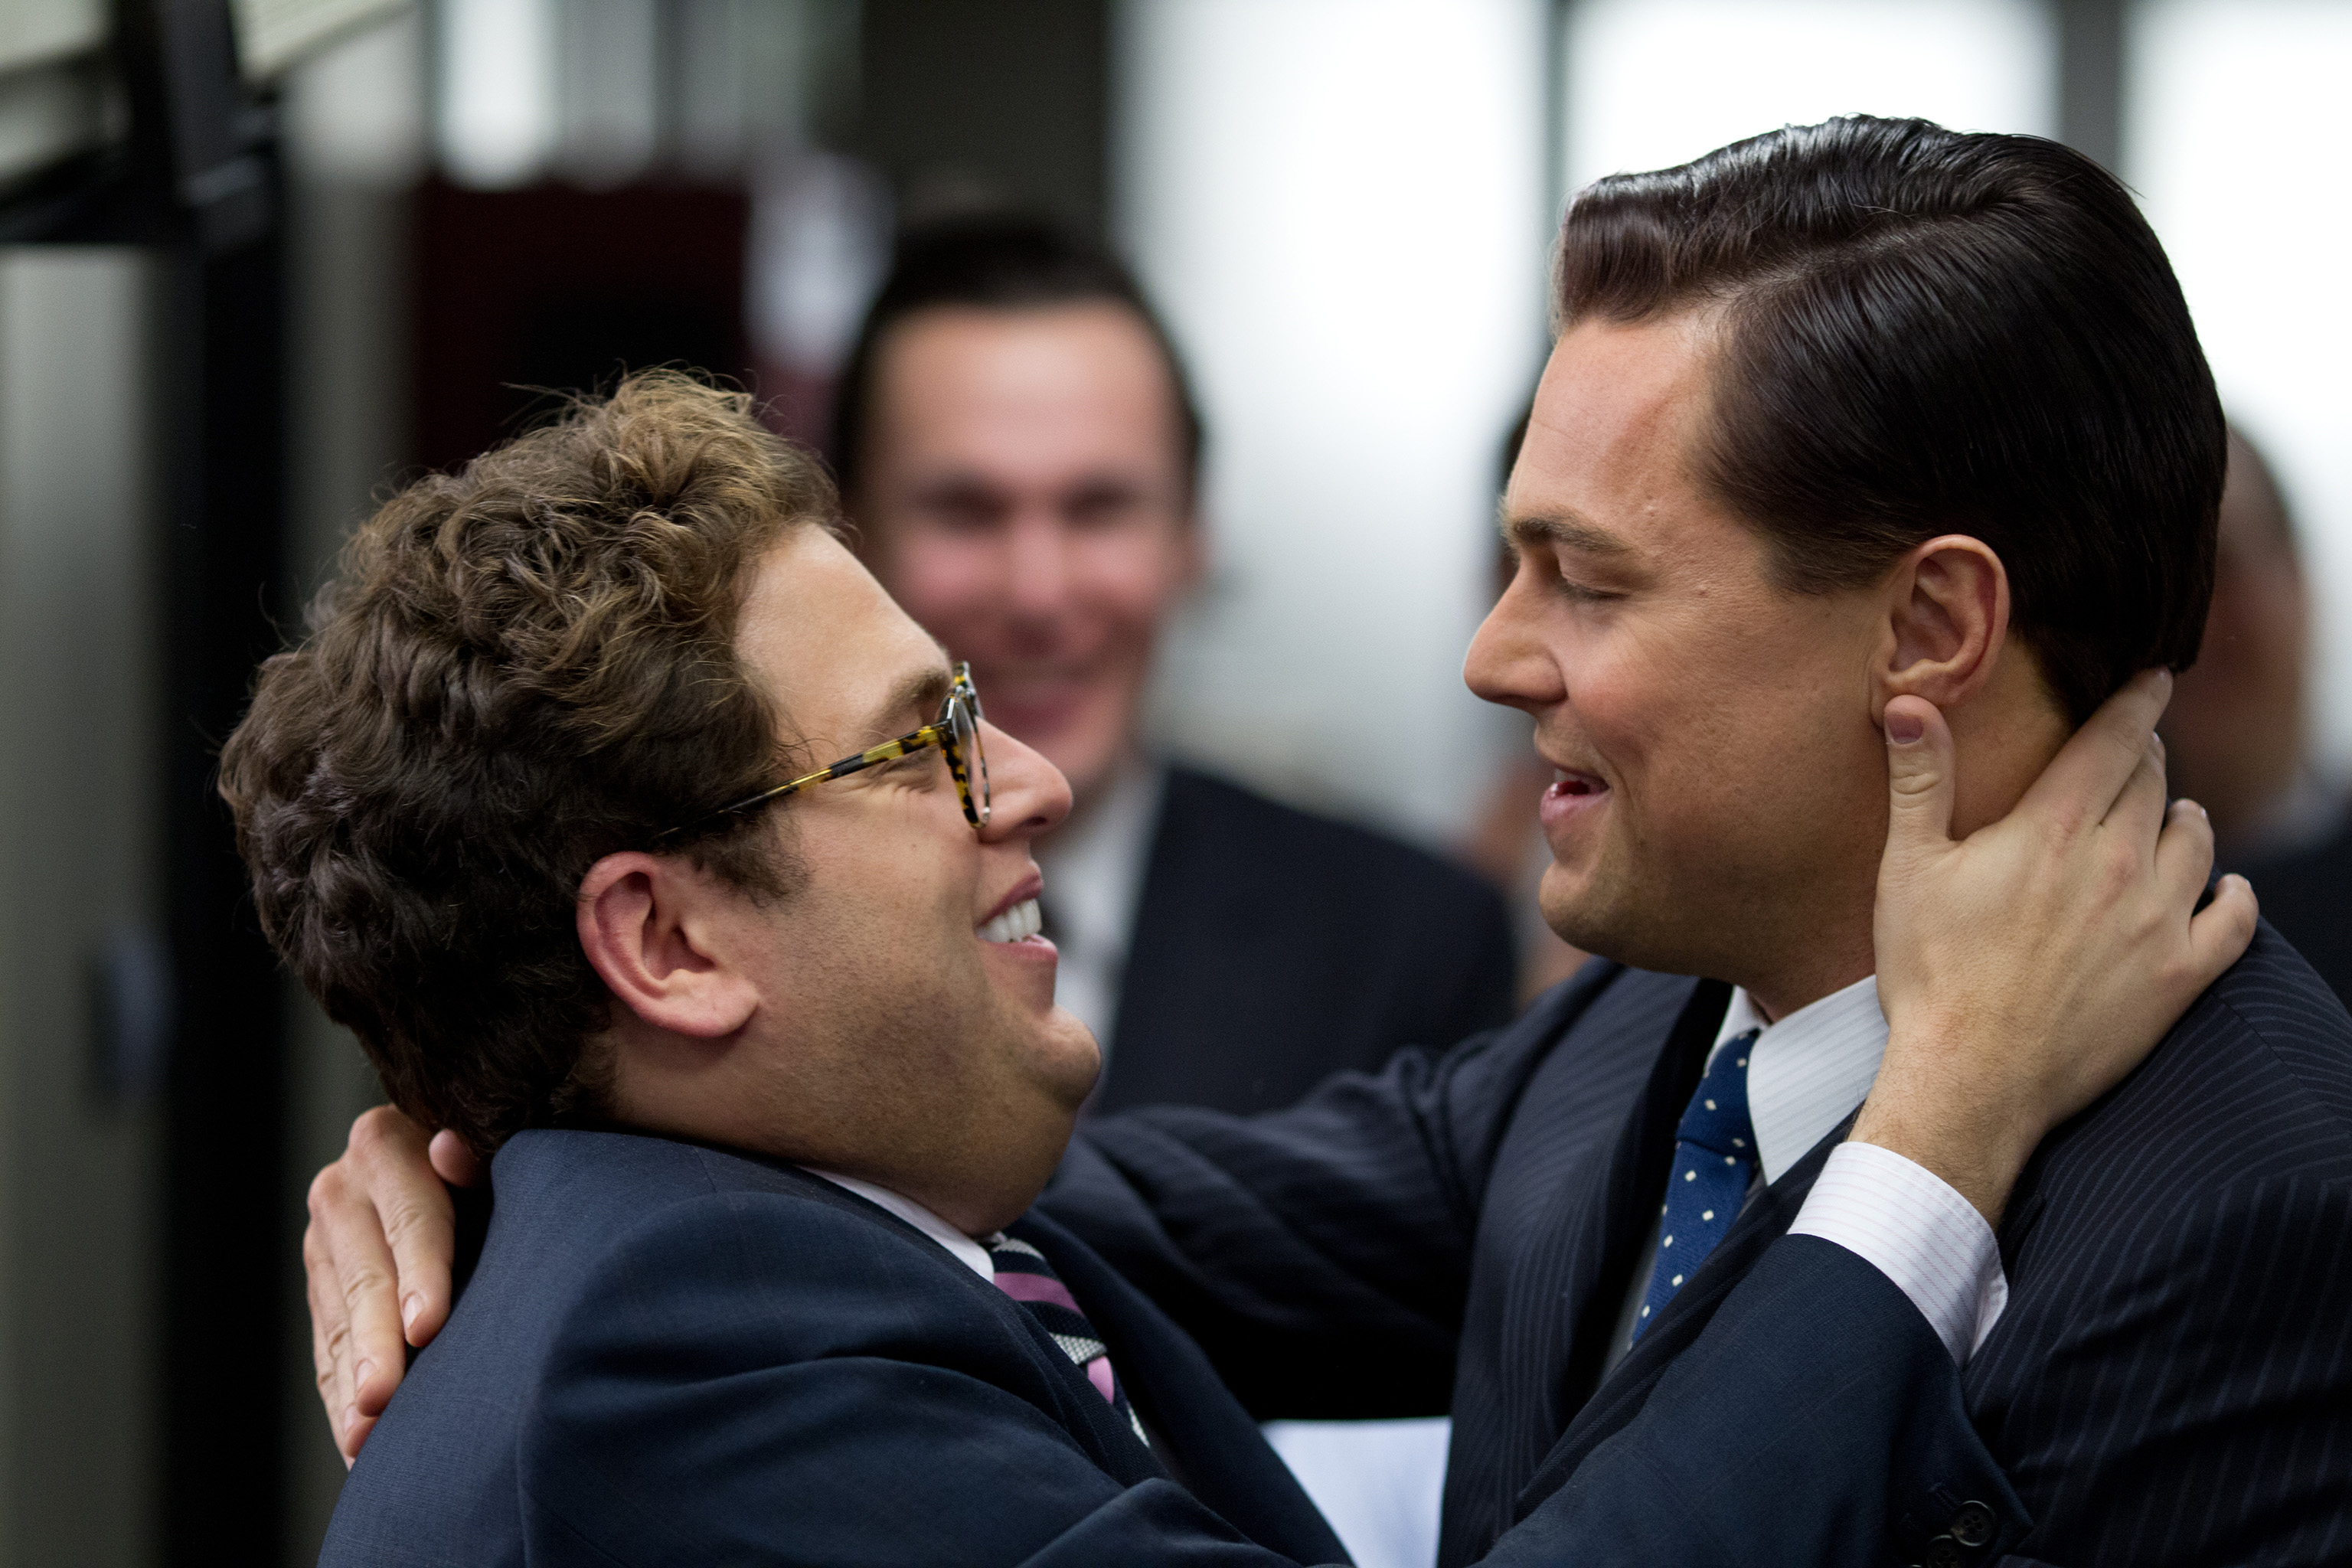 And leonardo dicaprio plays jordan belfort in the wolf of wall street